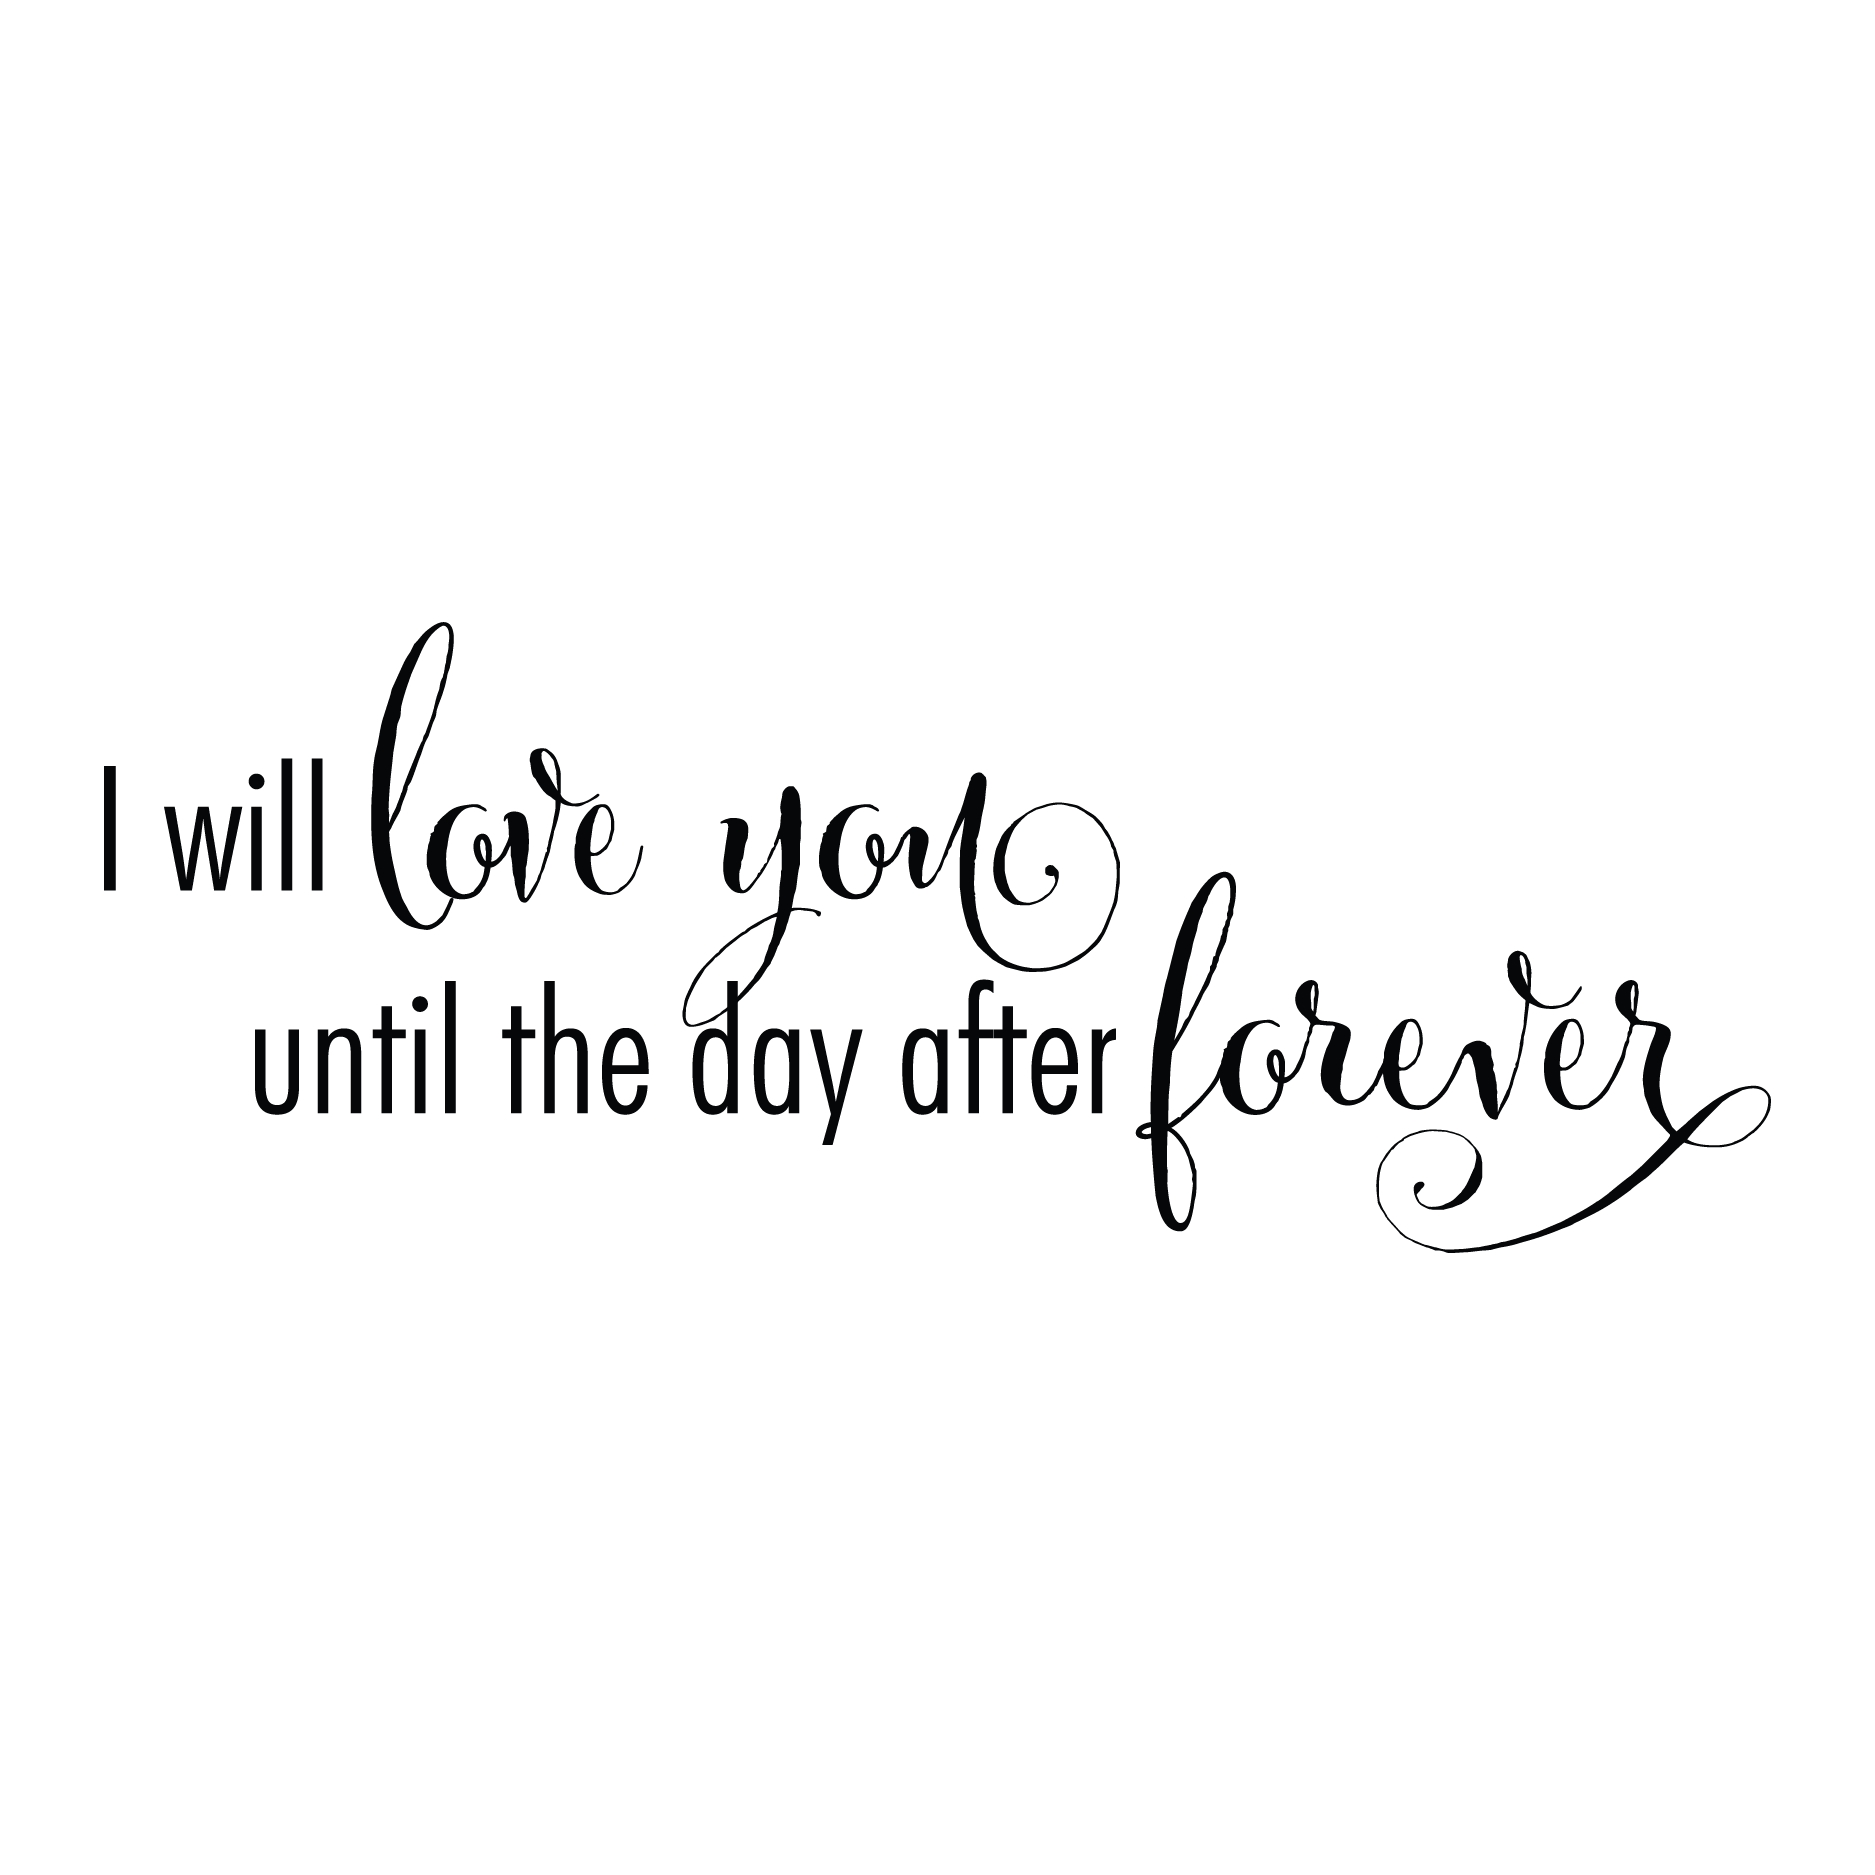 Black love quote png. I will you until